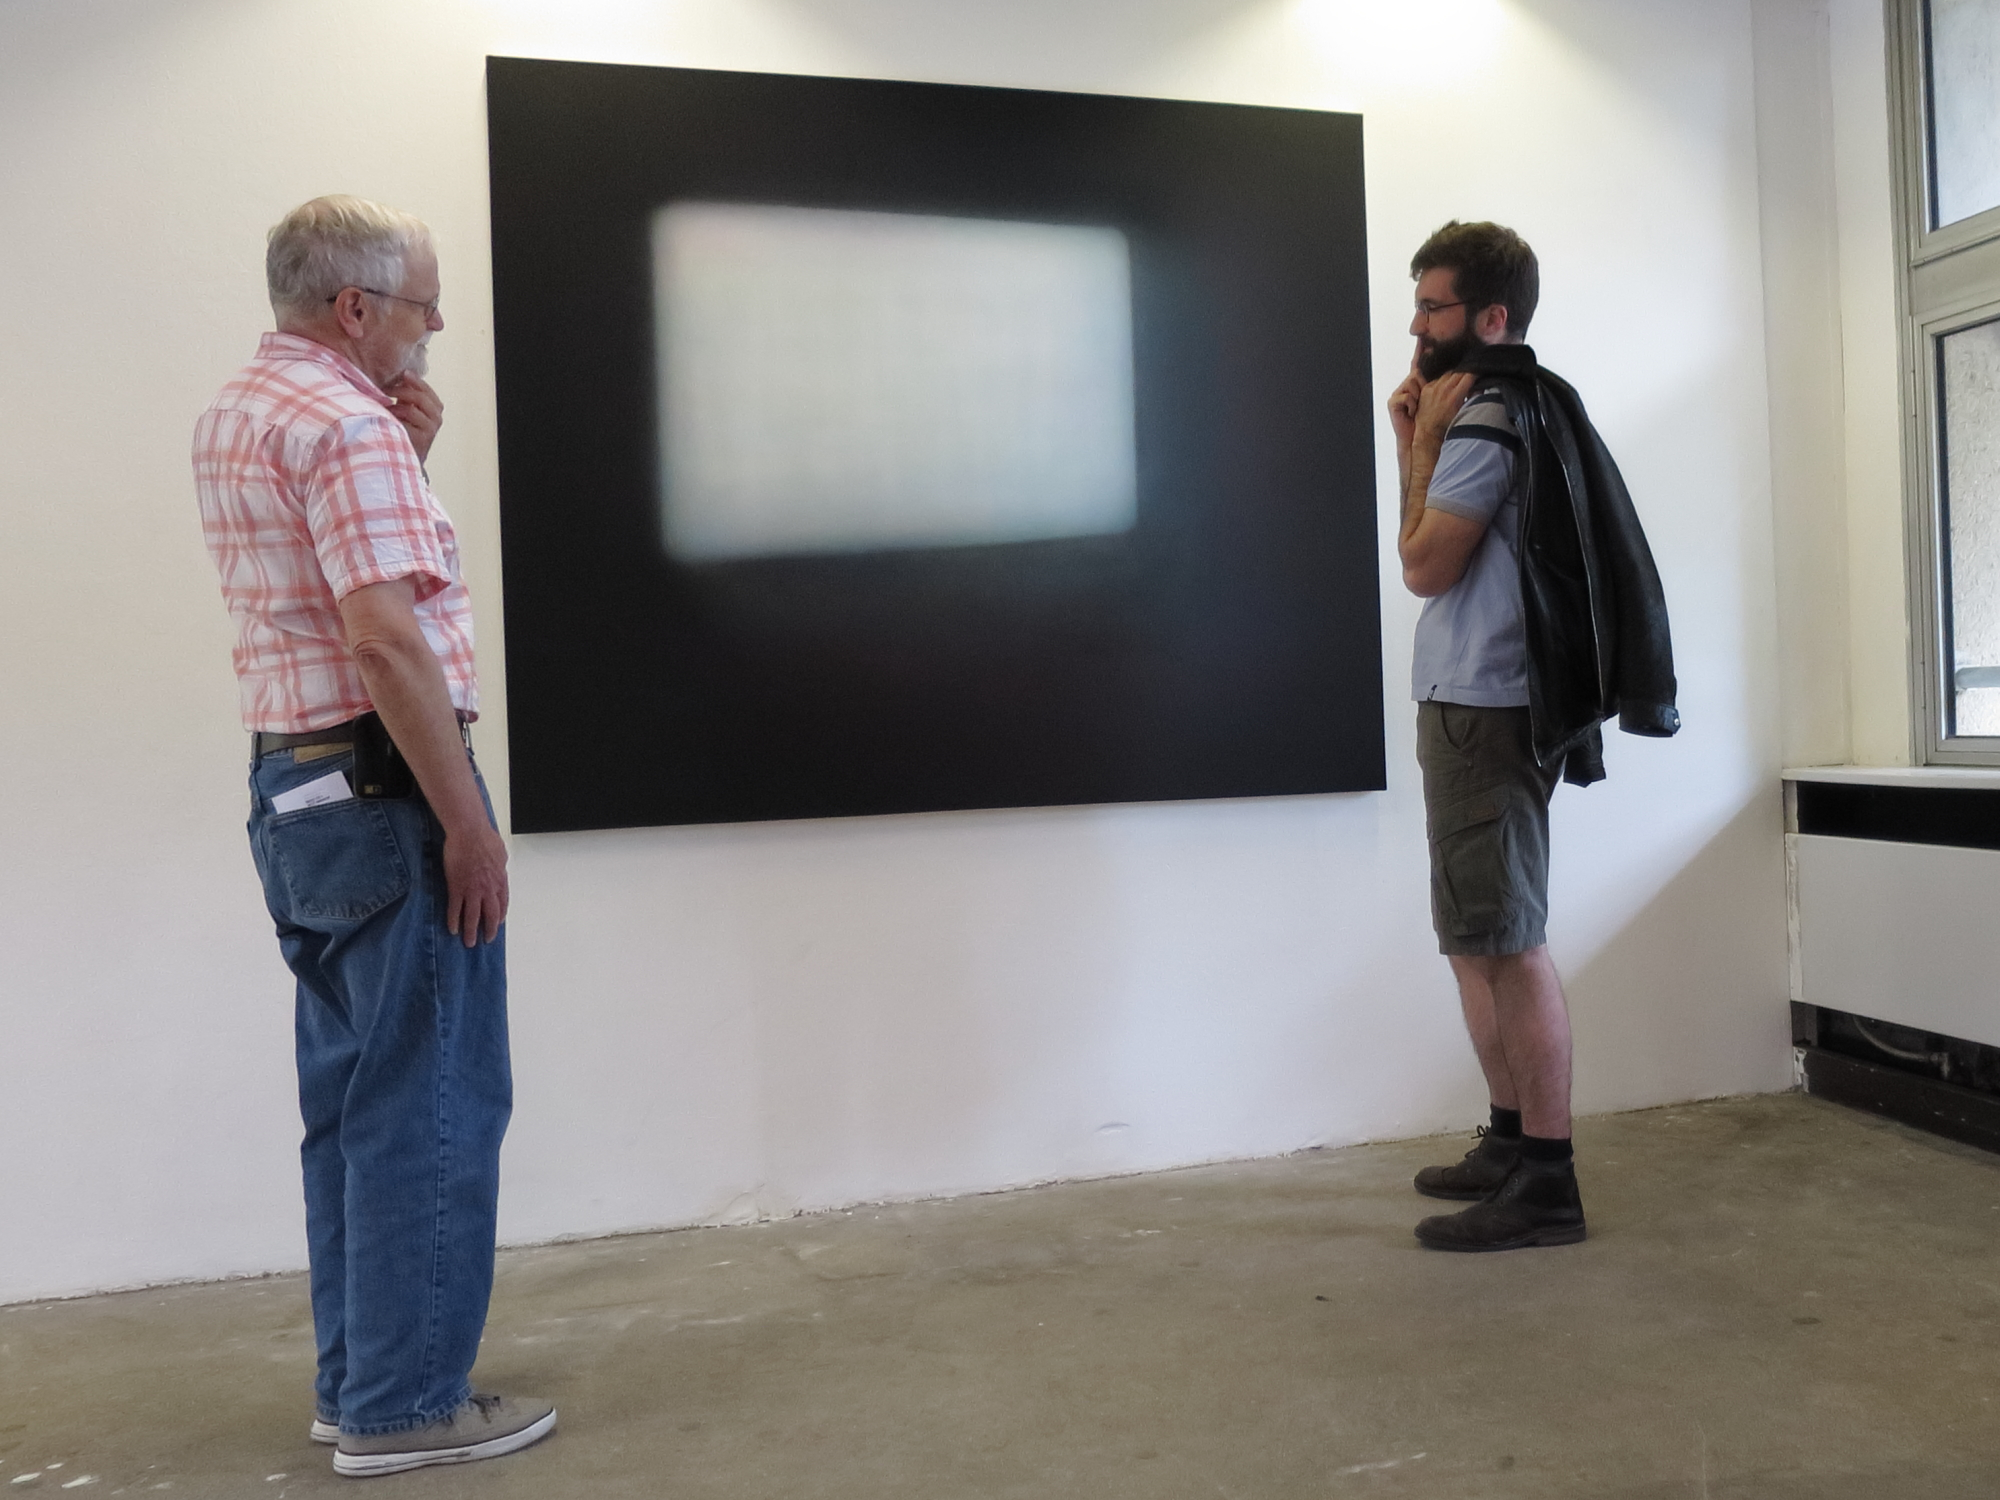 Bob and Guillaume contemplating 16mm, 2015 by Nicholas Delprat